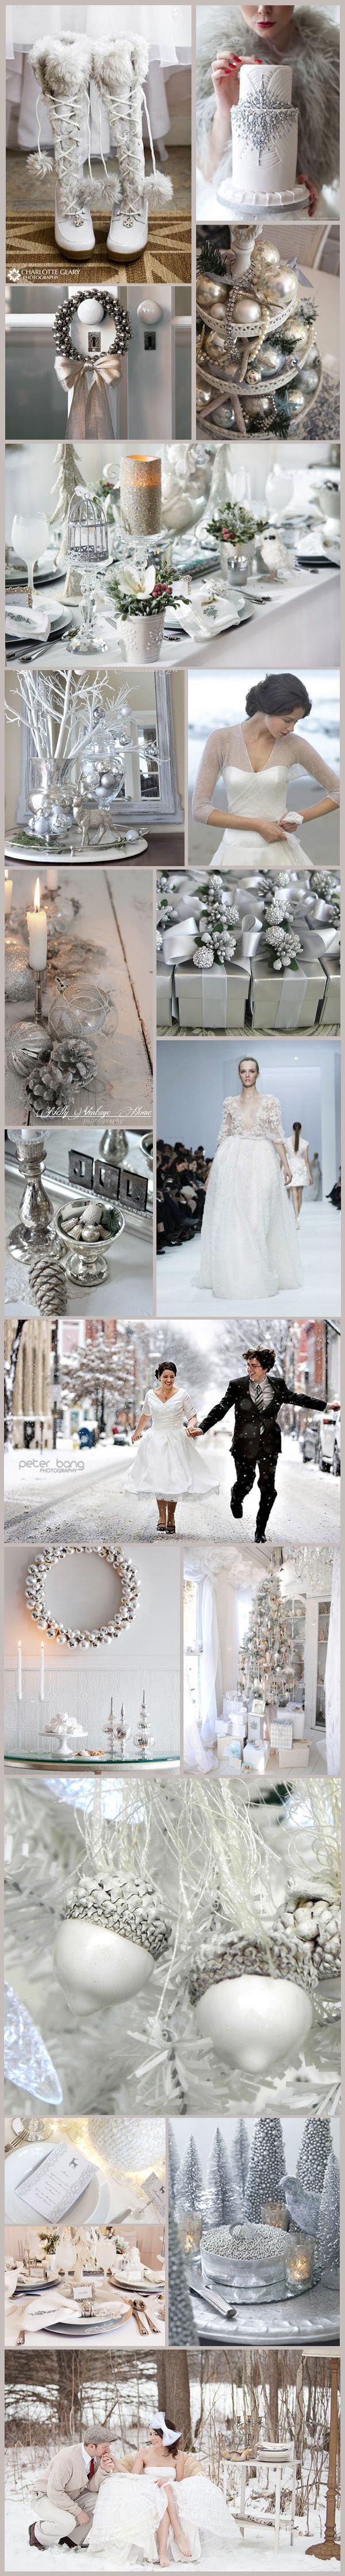 Wednesday Wedding Inspiration: Silver Christmas & Winter – Bespoke-Bride: Wedding Blog